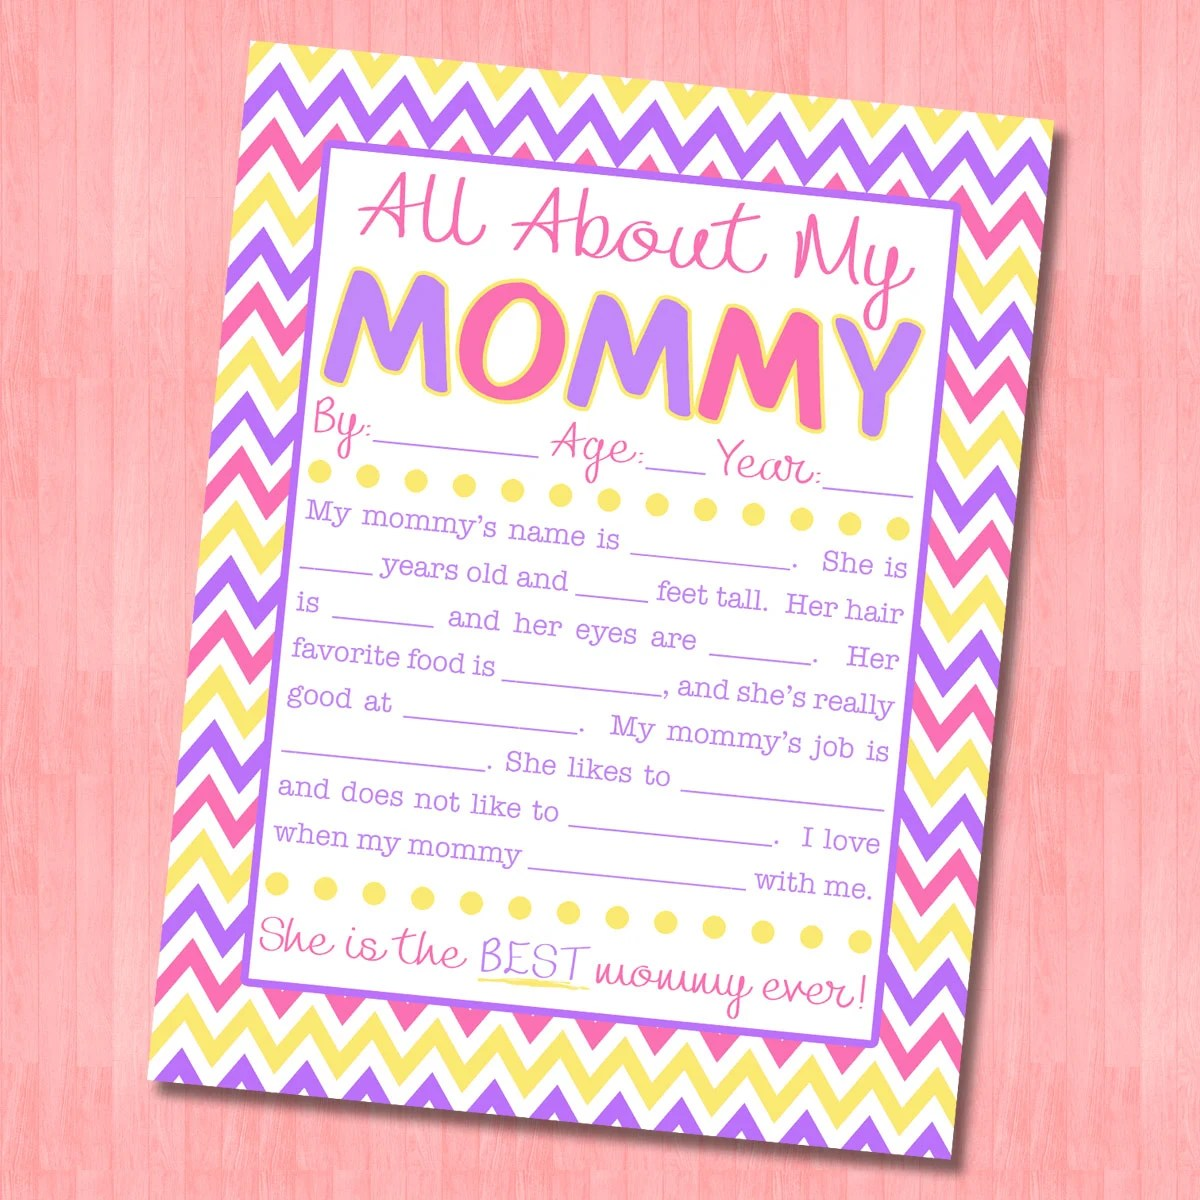 image regarding All About Mom Printable referred to as All Over My Mommy Job interview with Cost-free Printable!